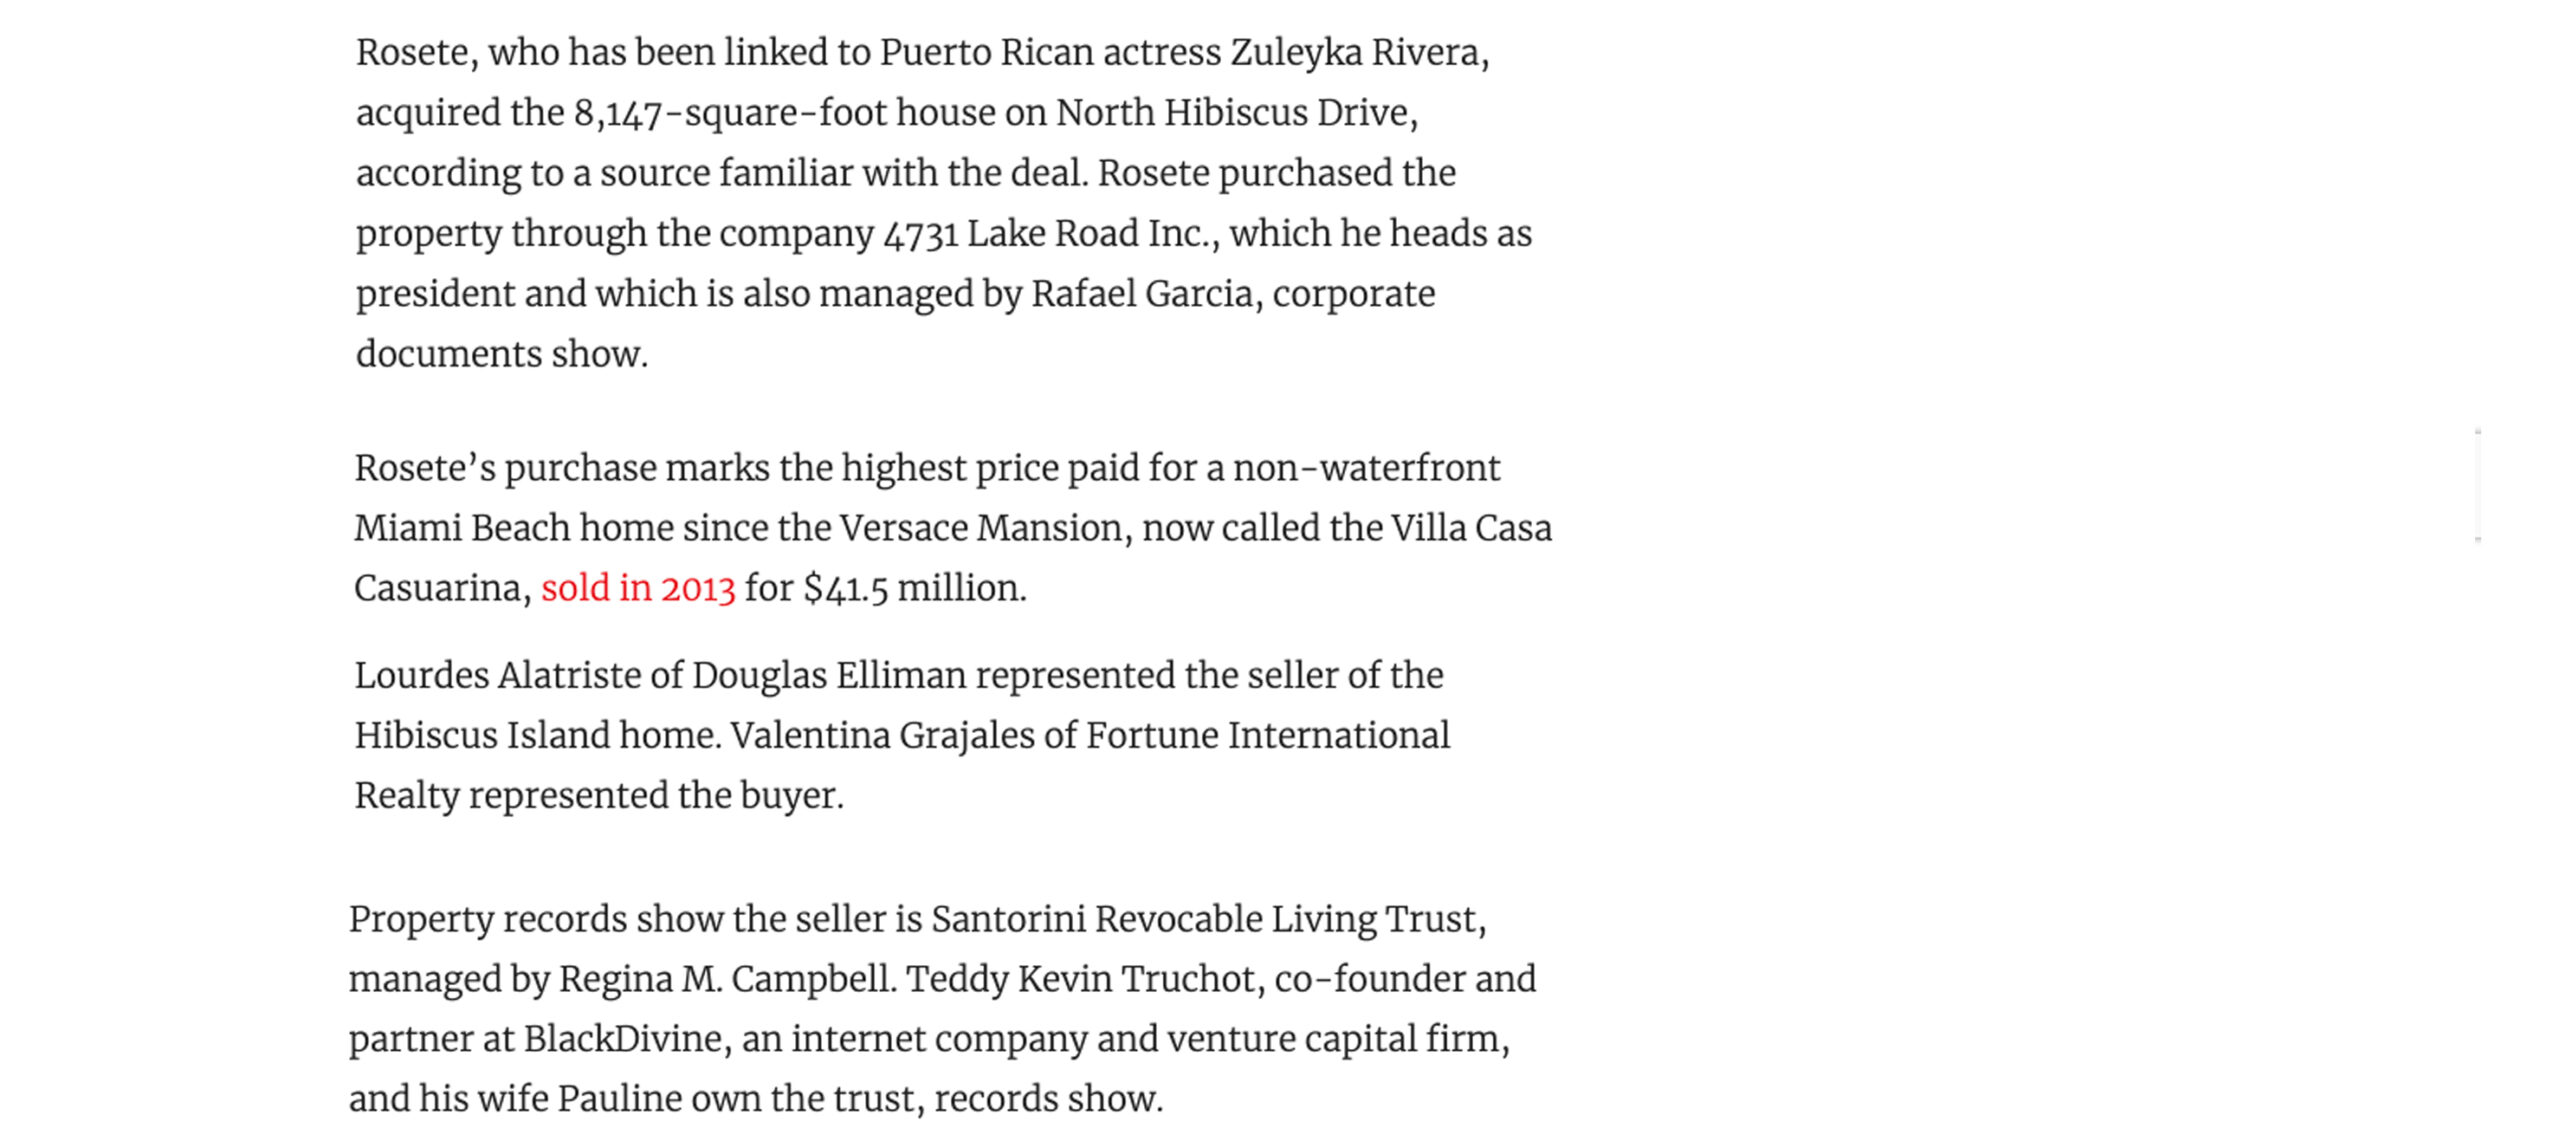 The Real Deal – Mexican film producer buys Hibiscus Island mansion